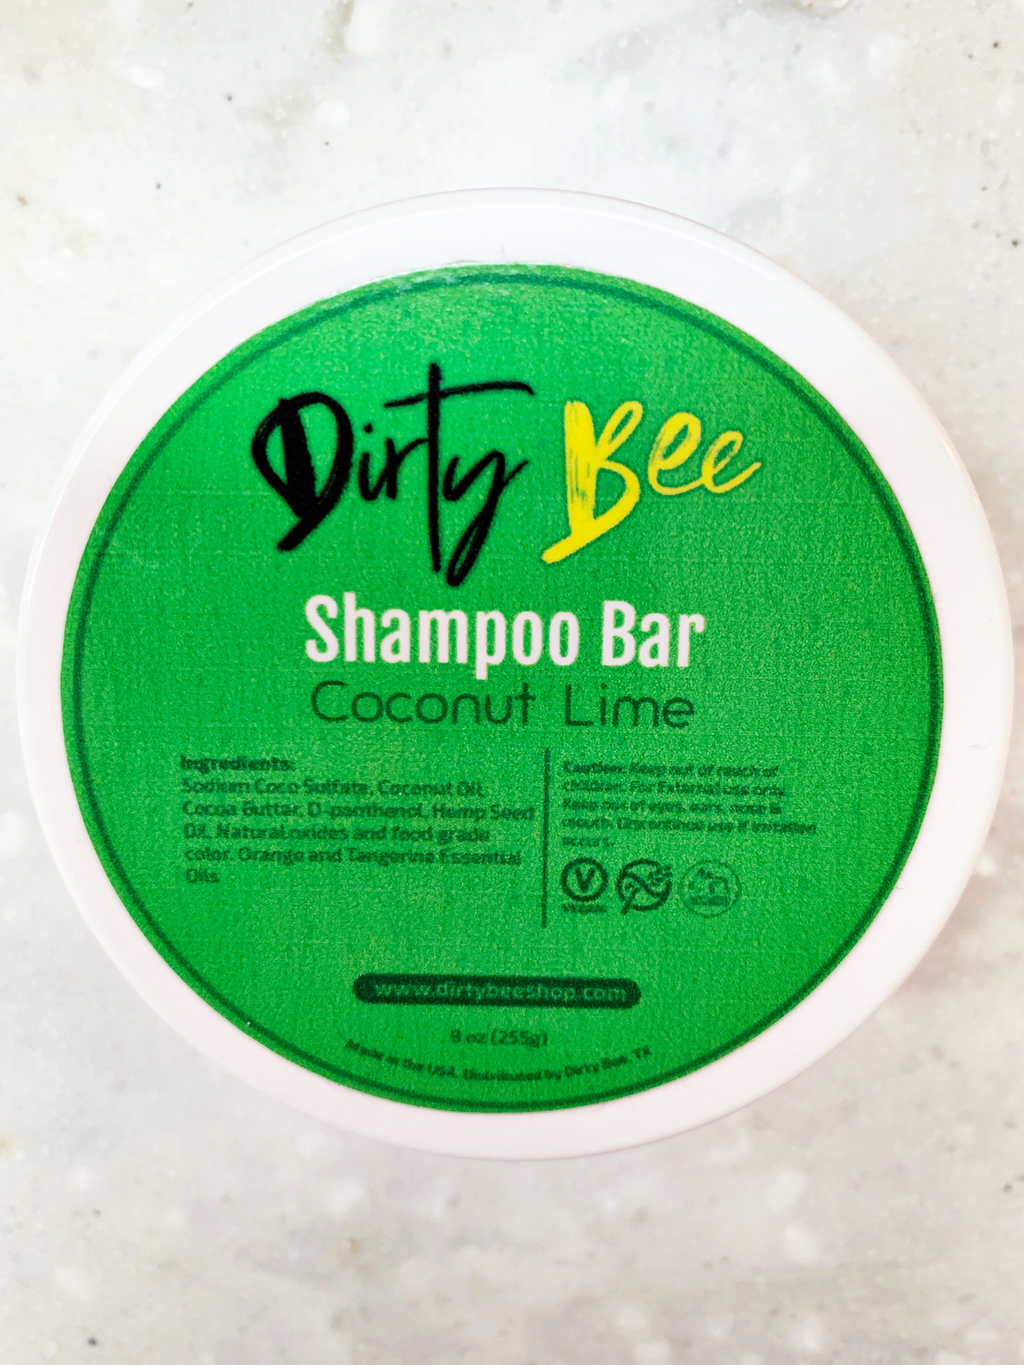 Dirty Bee Shampoo Bars | Coconut Lime